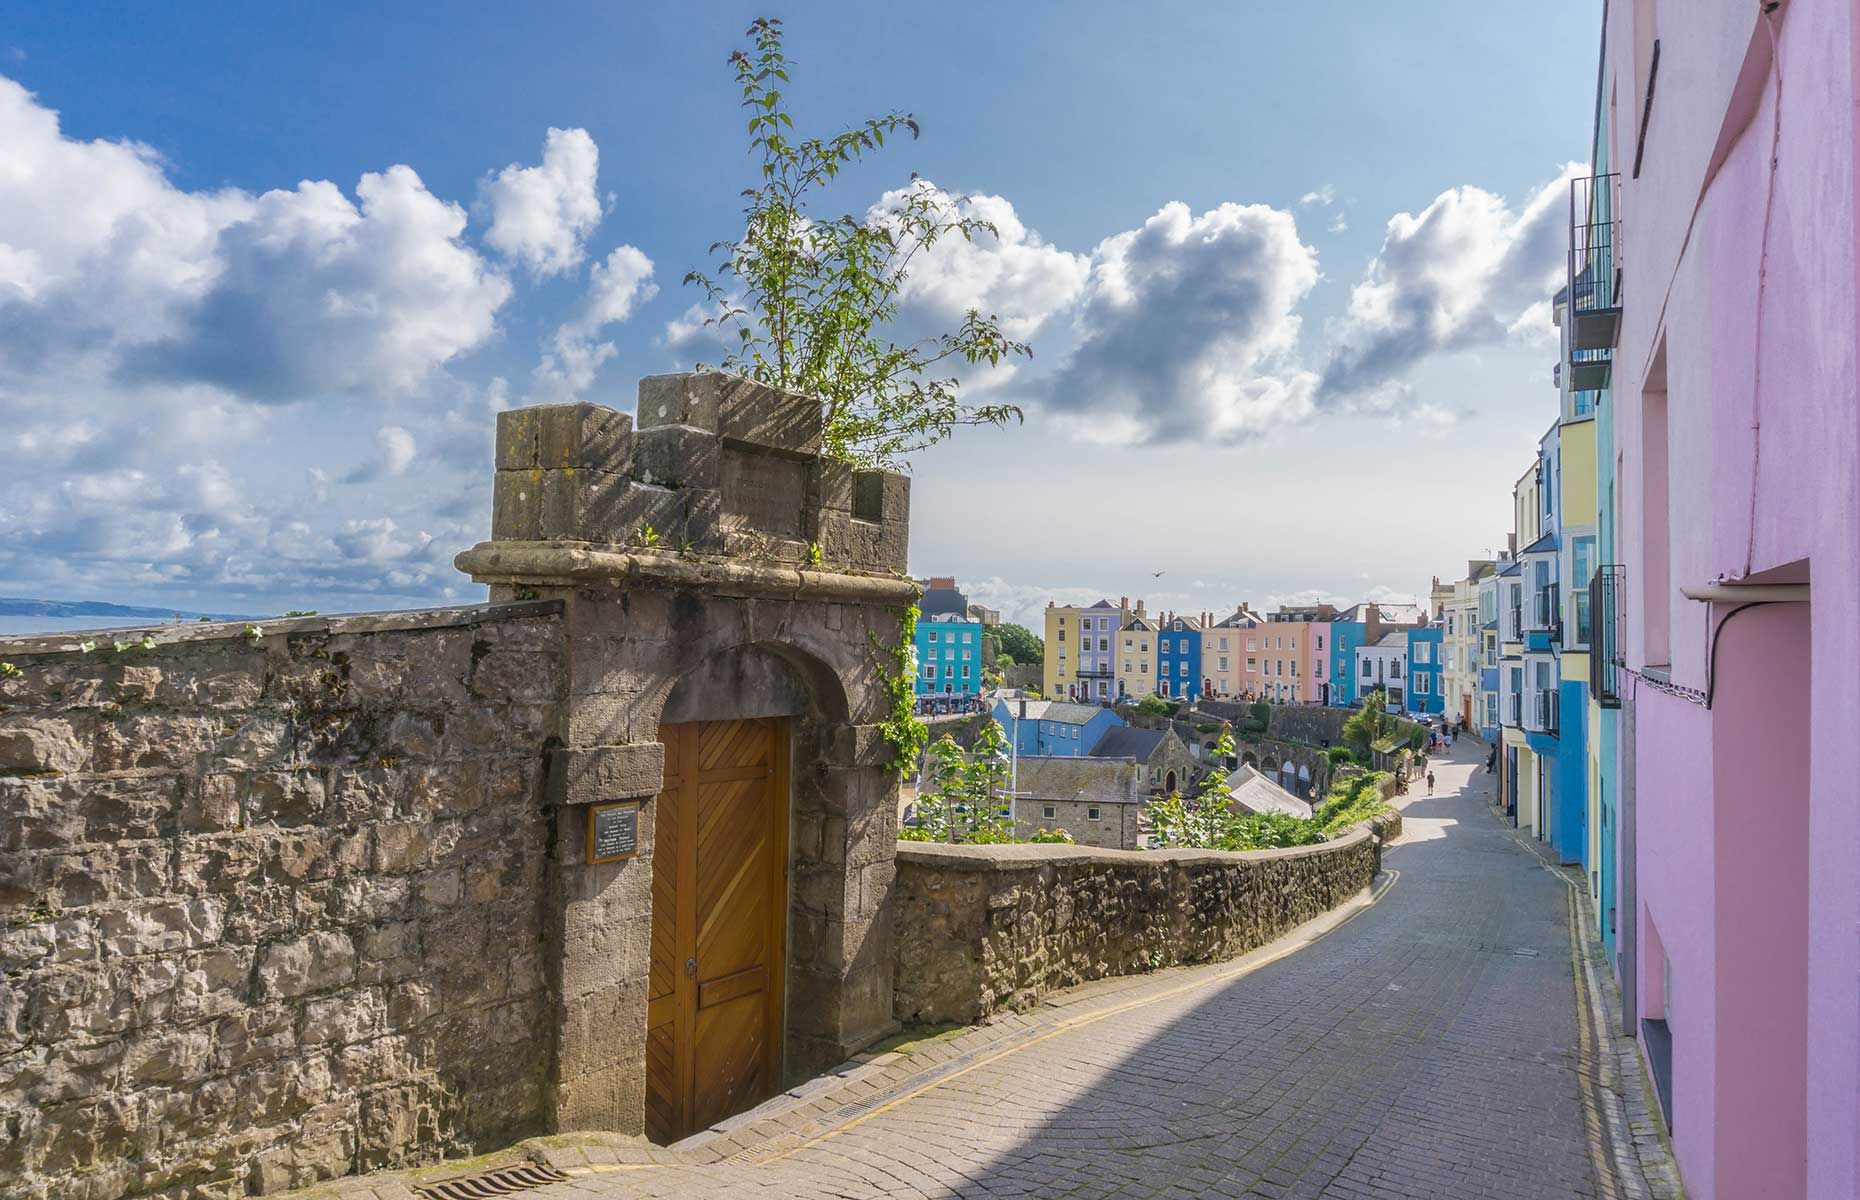 Village on Tenby, on the Wales Coast Path